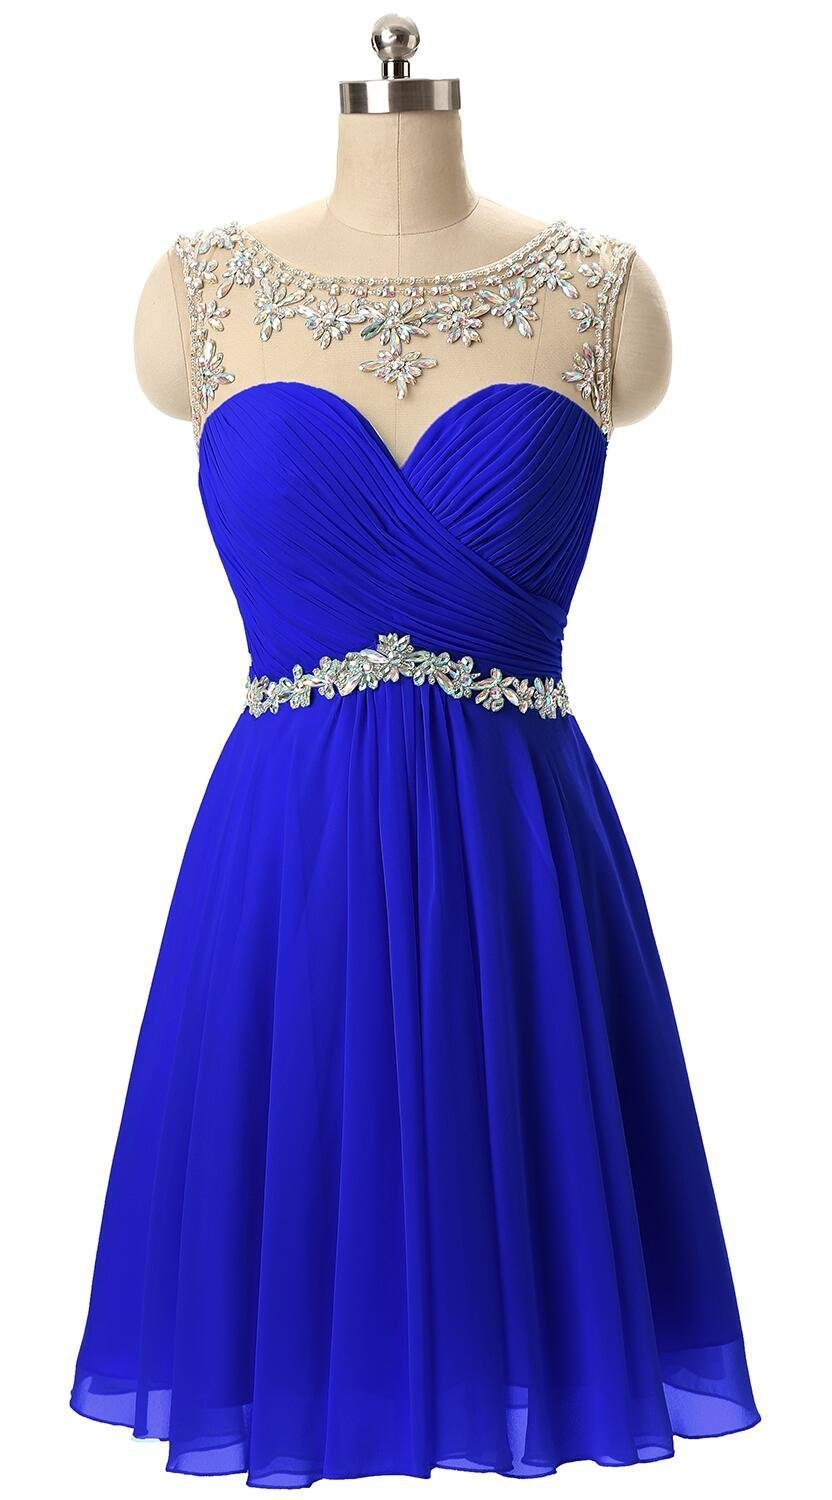 ca4298076dd2 Home/Brands/Butmoon/Butmoon Women's Beaded Homecoming Dresses Short Chiffon  Prom Dresses 2018 Royal Blue US10. ; 